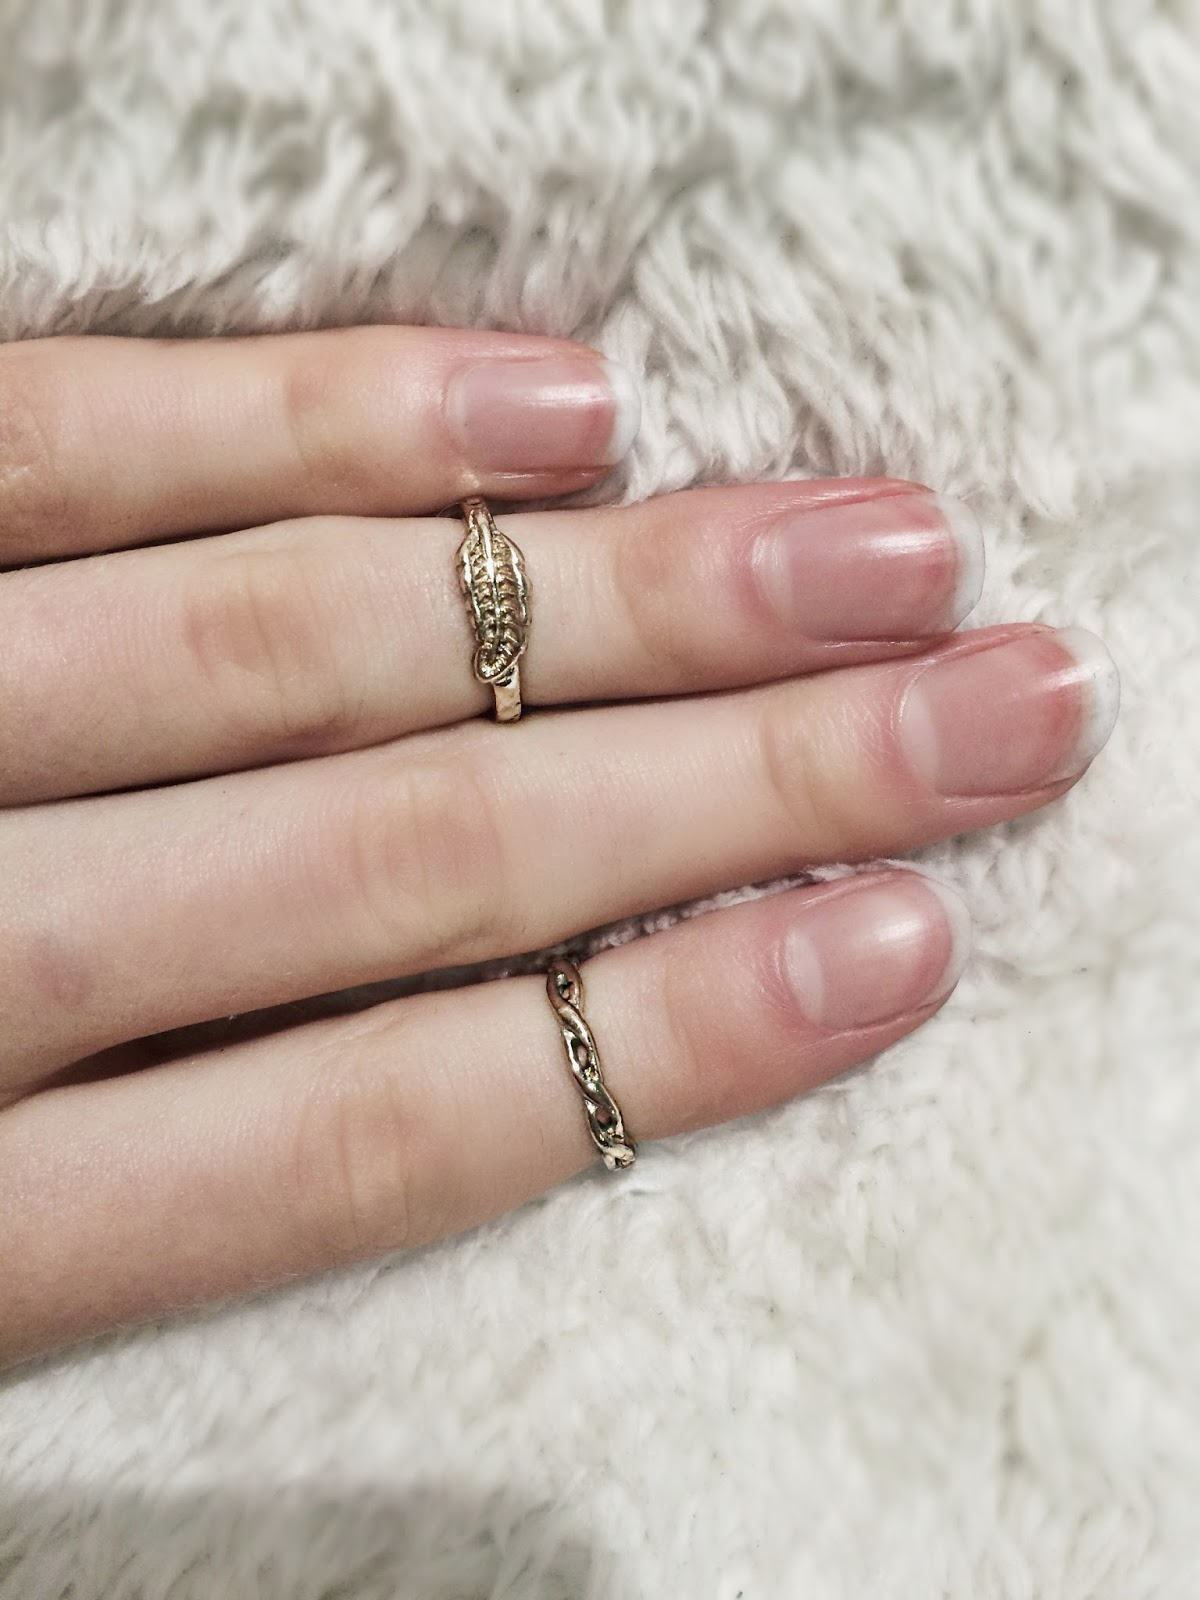 River island rings, blogger